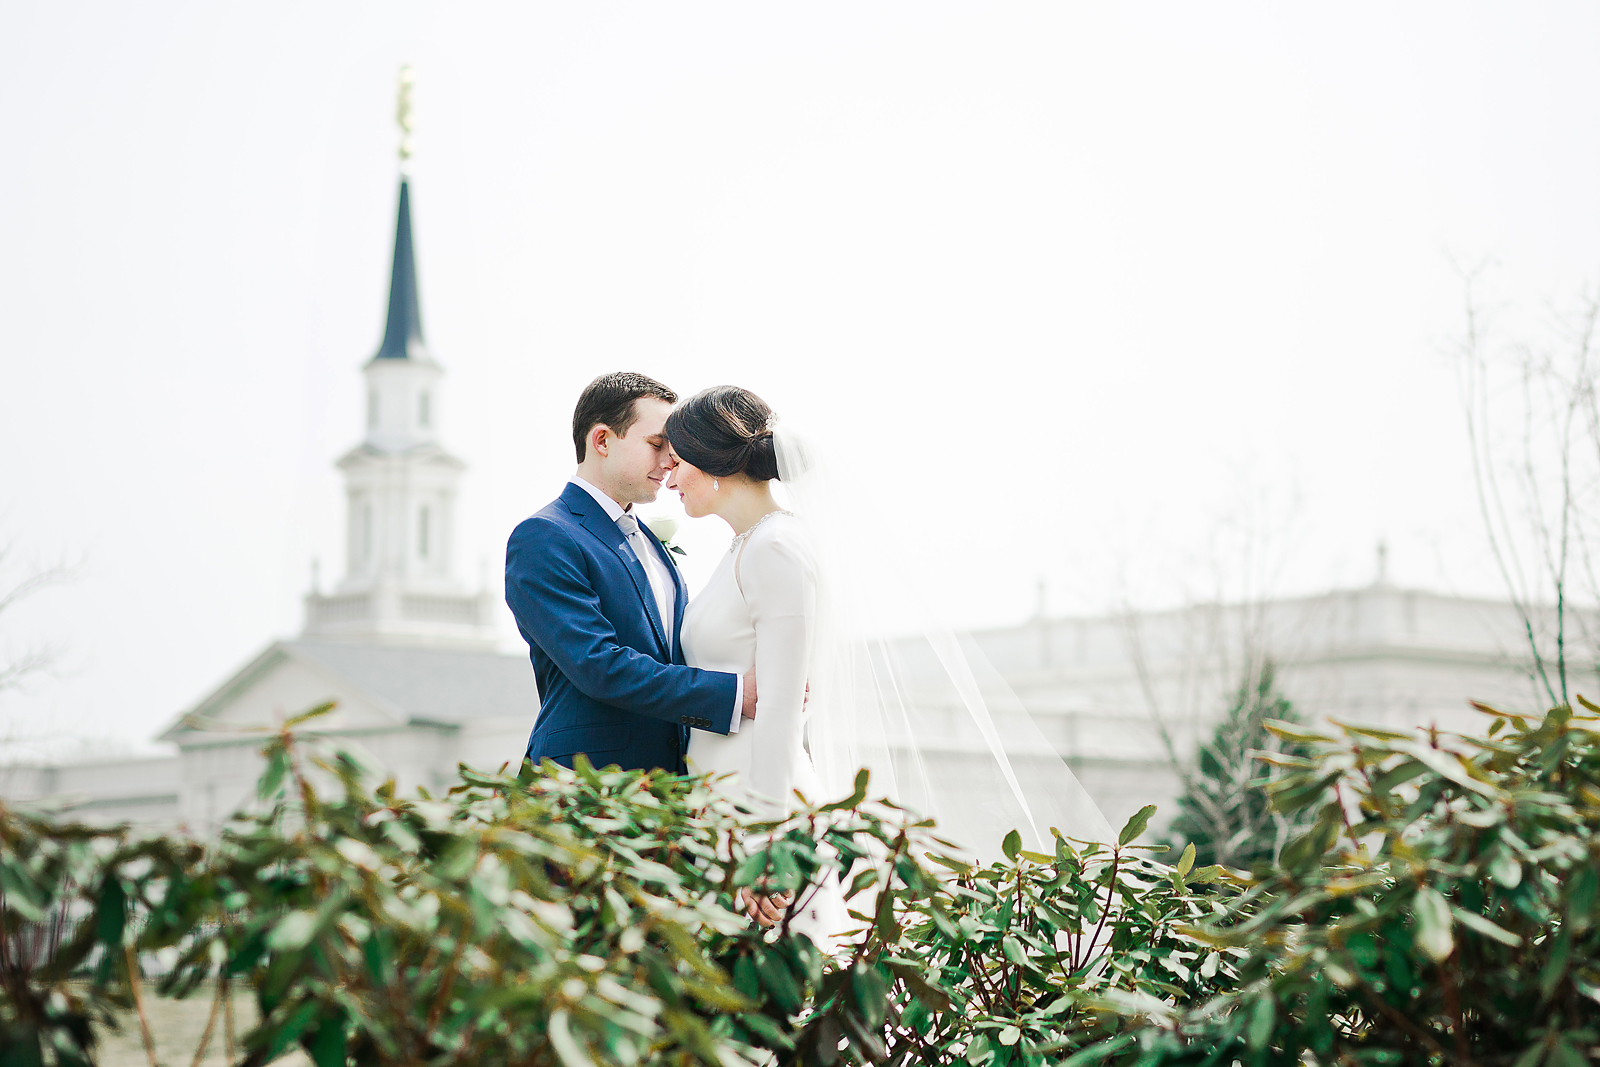 lds_hartford_temple_wedding_018.jpg